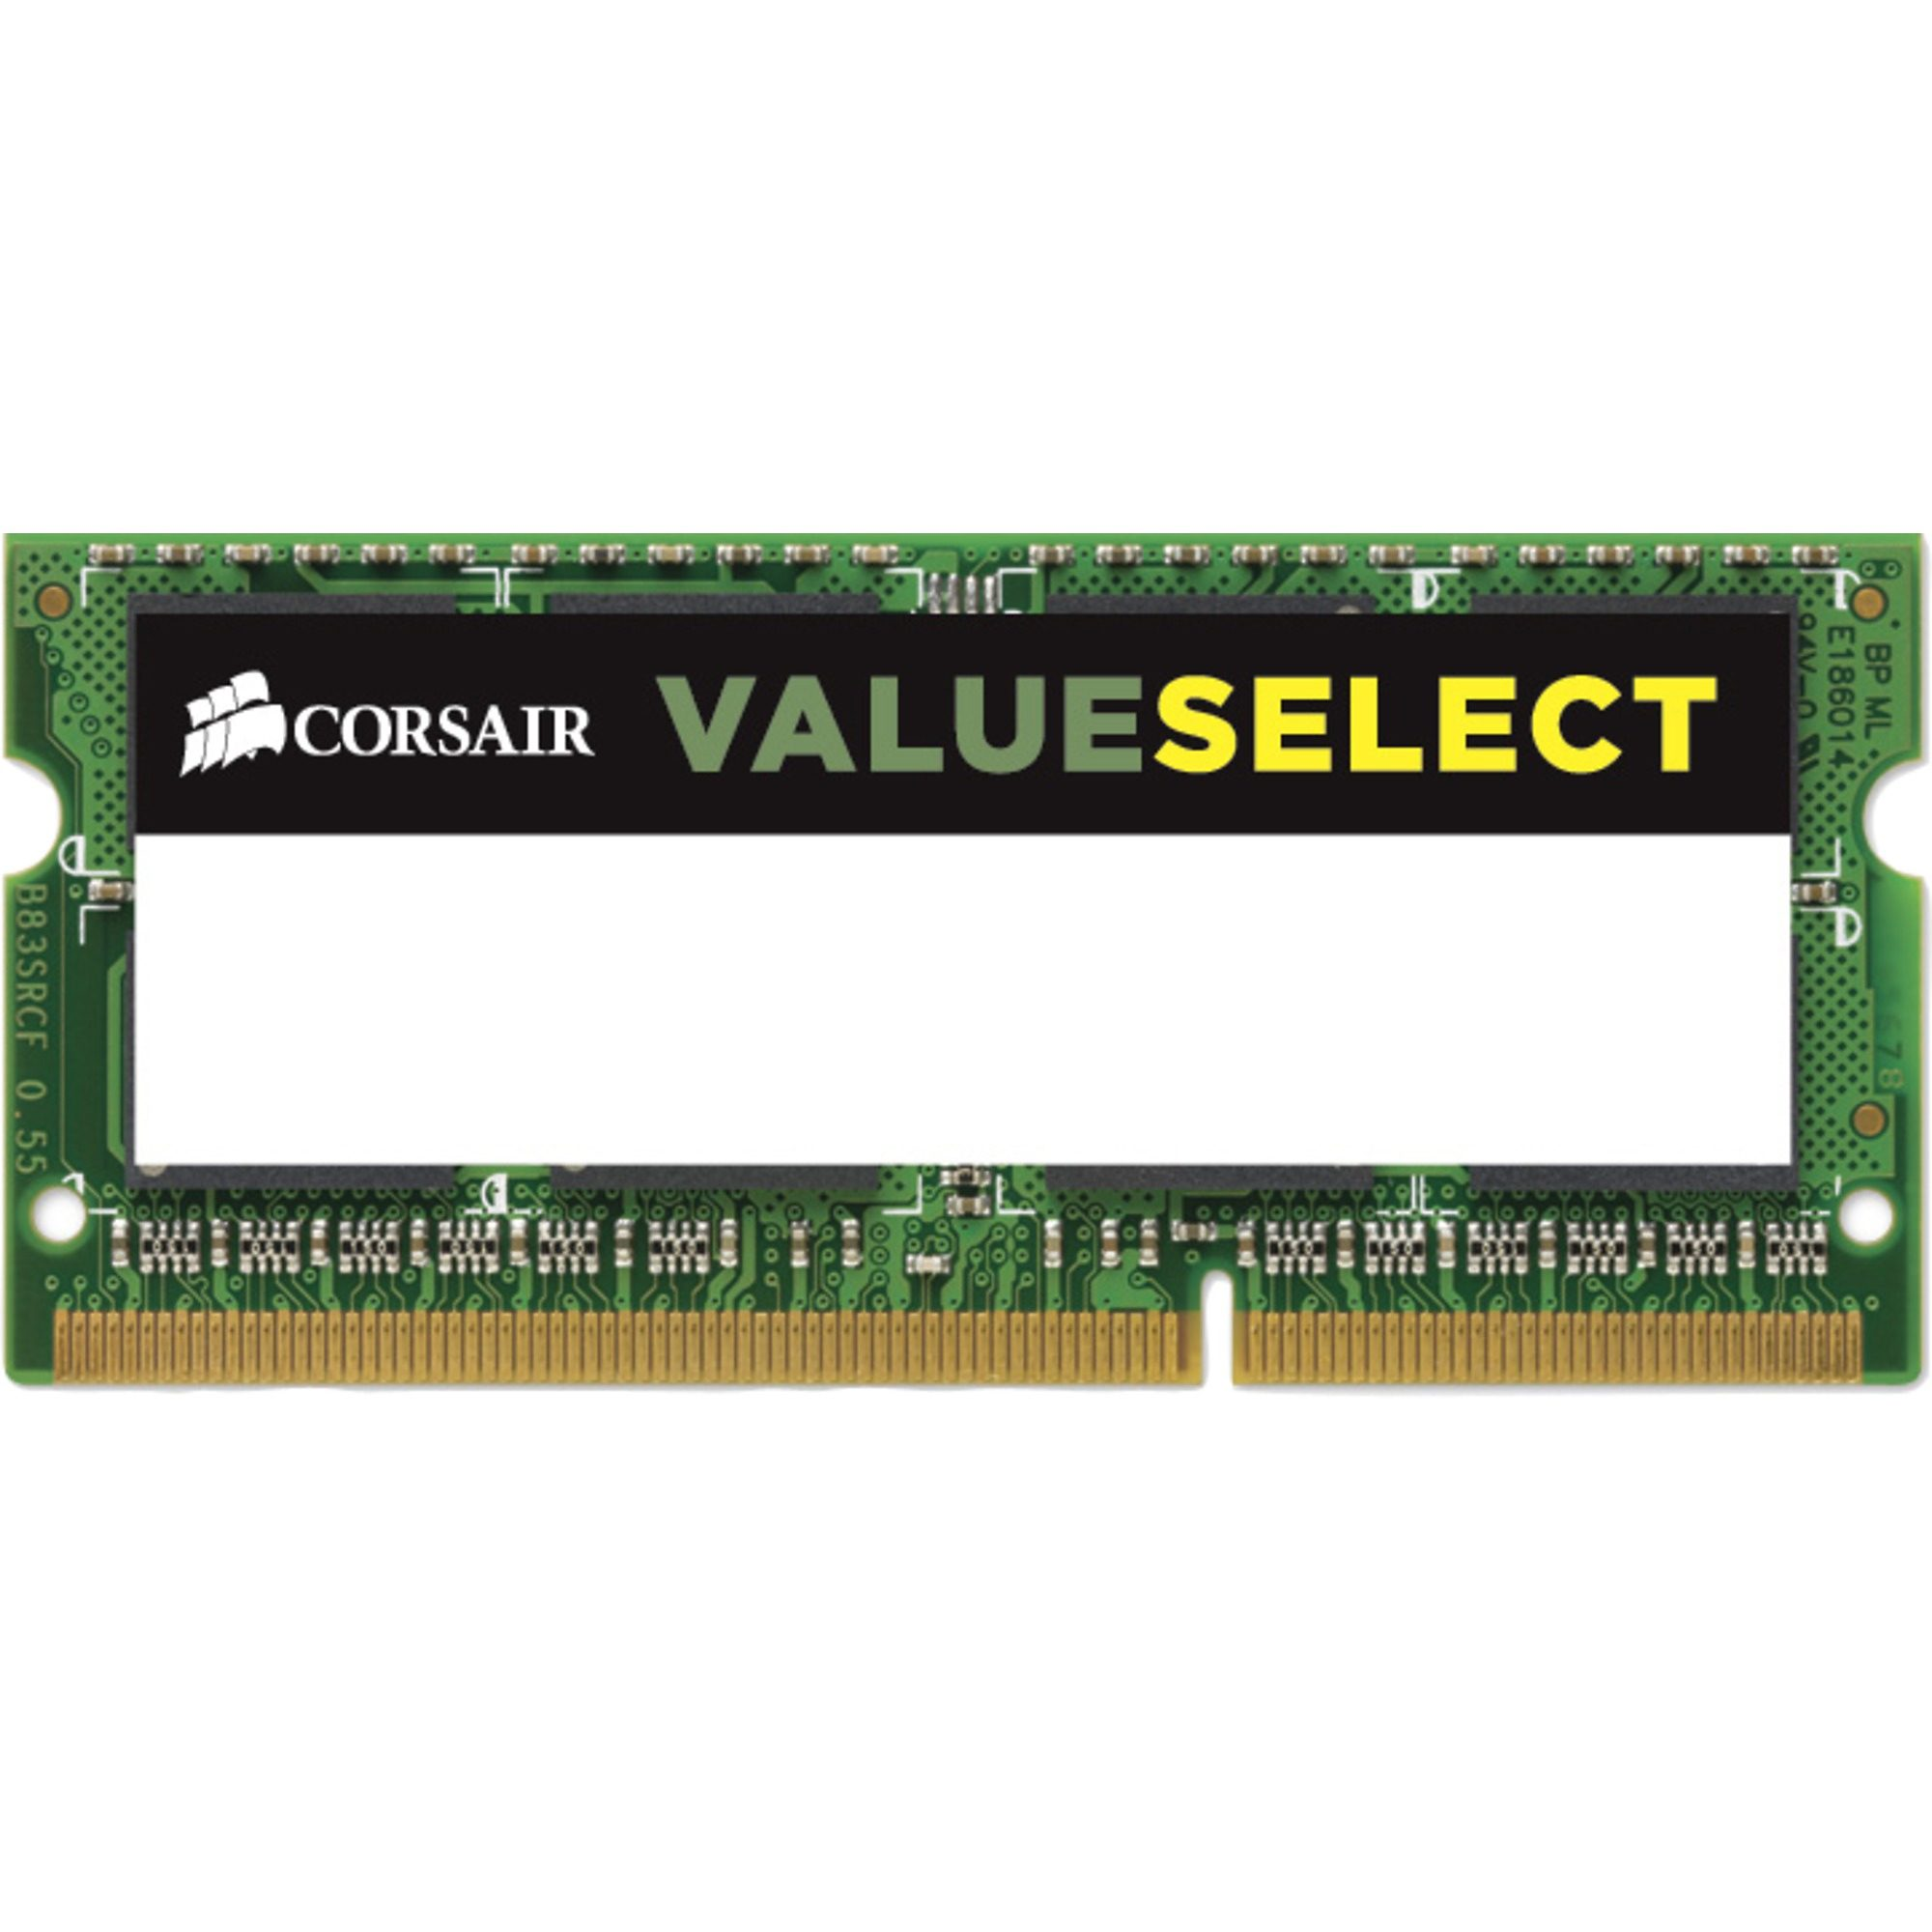 Corsair ValueSelect Arbeitsspeicher »SO-DIMM 8 GB DDR3-1600«